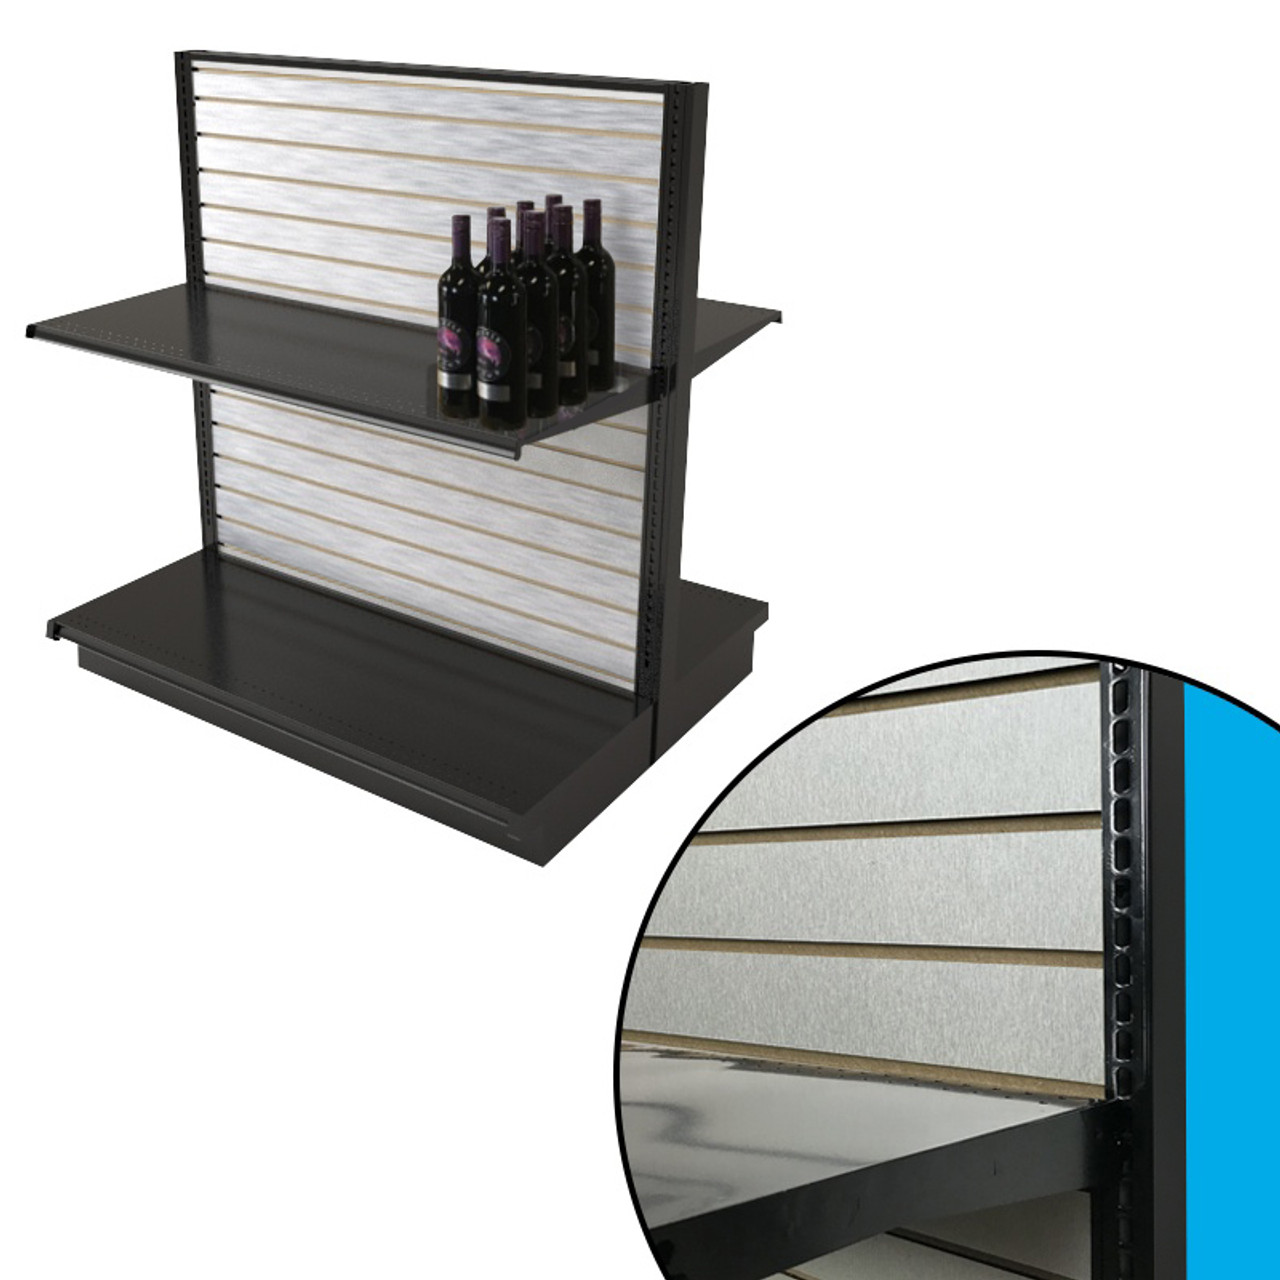 Brushed Aluminum Slatwall Panels In Black Gondola Shelving Aisle 54h